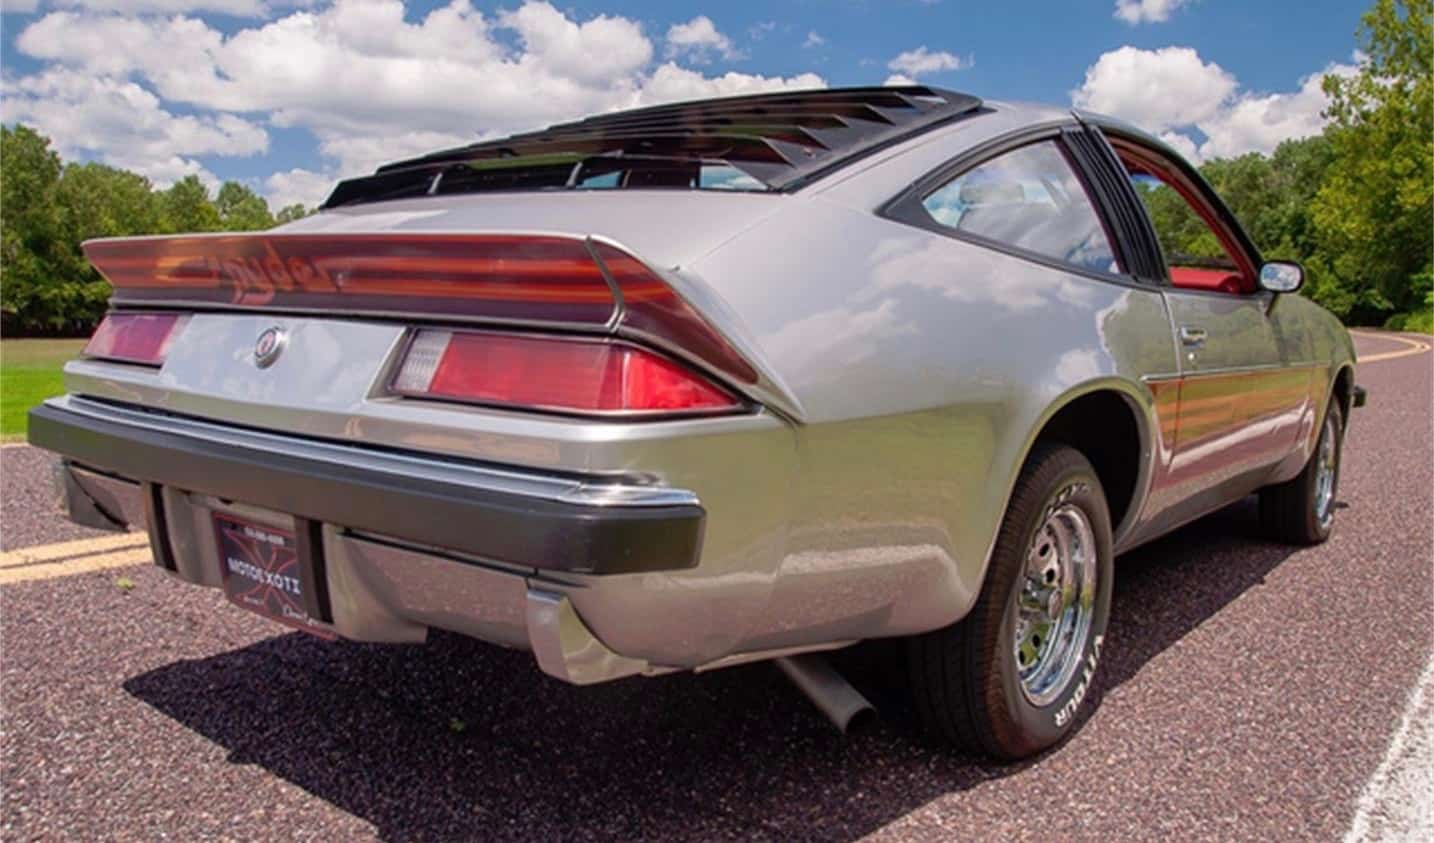 1980 Chevrolet Monza, Corvair wasn't Chevy's only hot Monza model, ClassicCars.com Journal